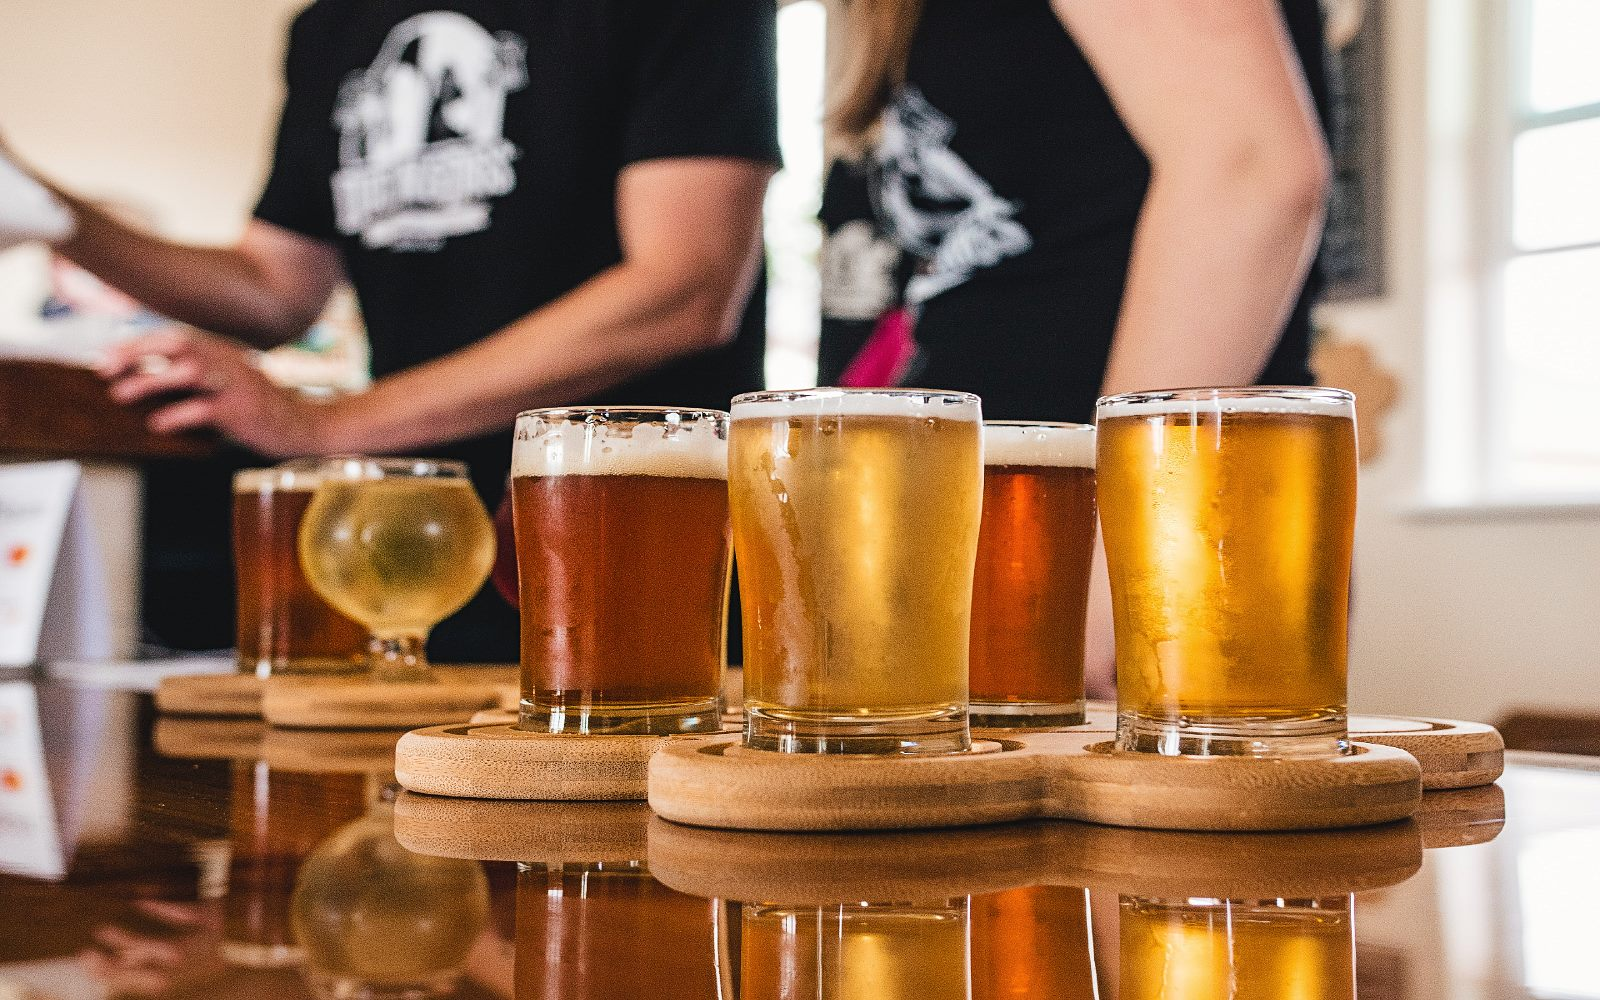 Beer tasters sit on a table at a Craft Brewery